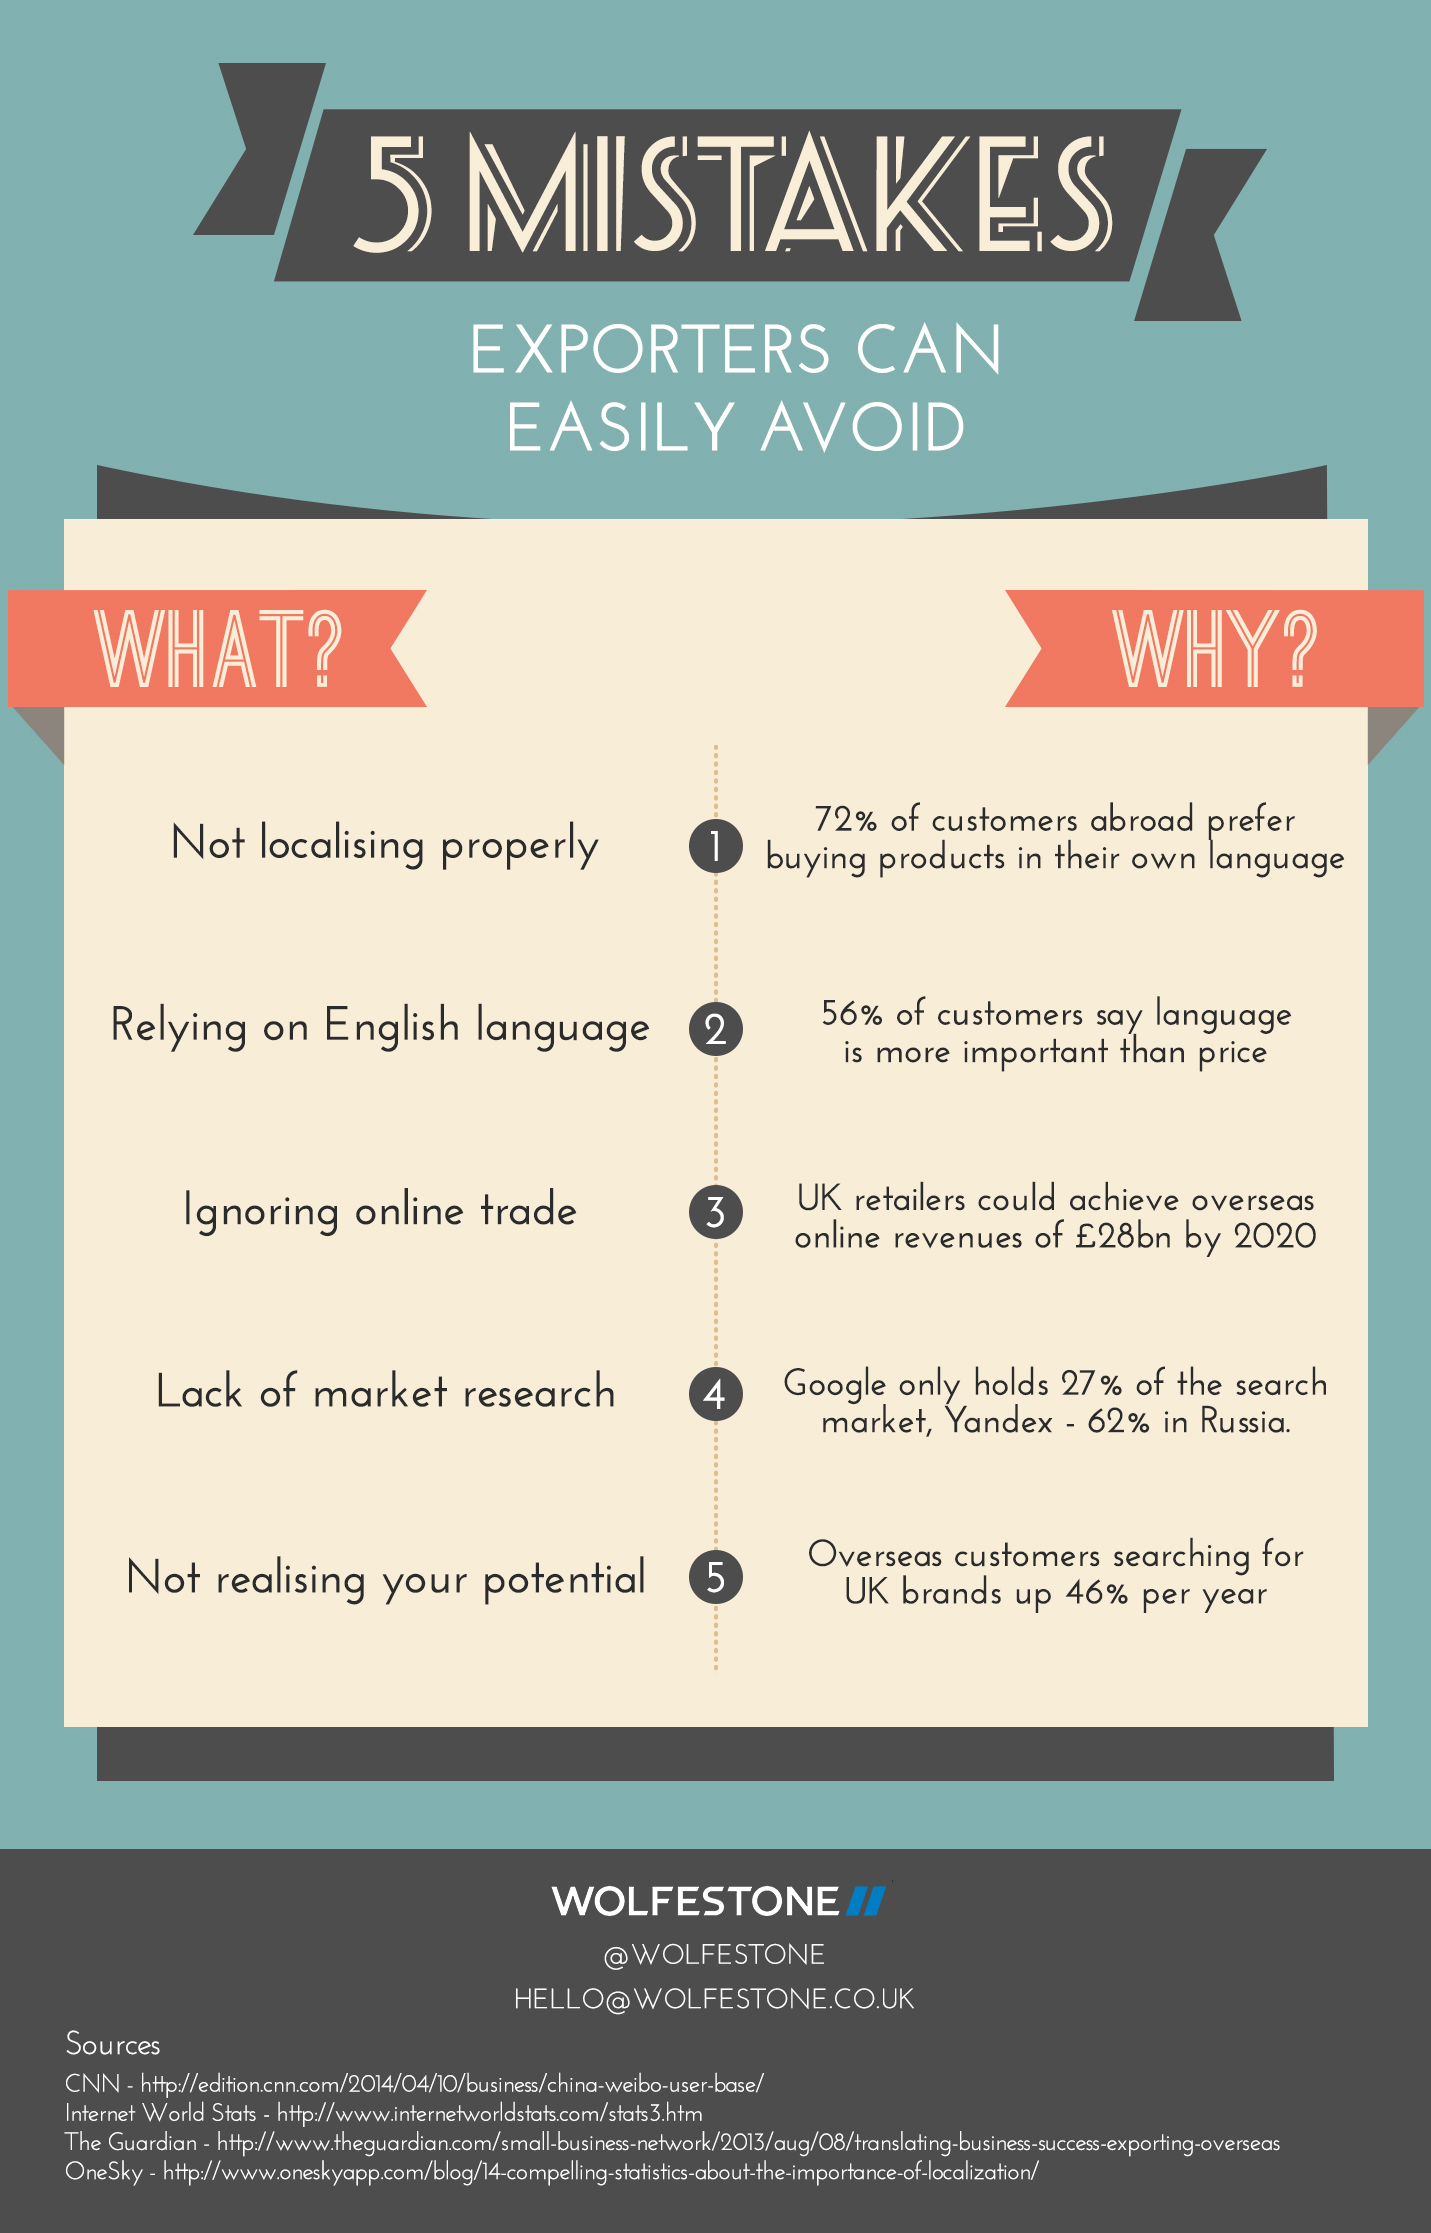 5 mistakes exporters can easily avoid